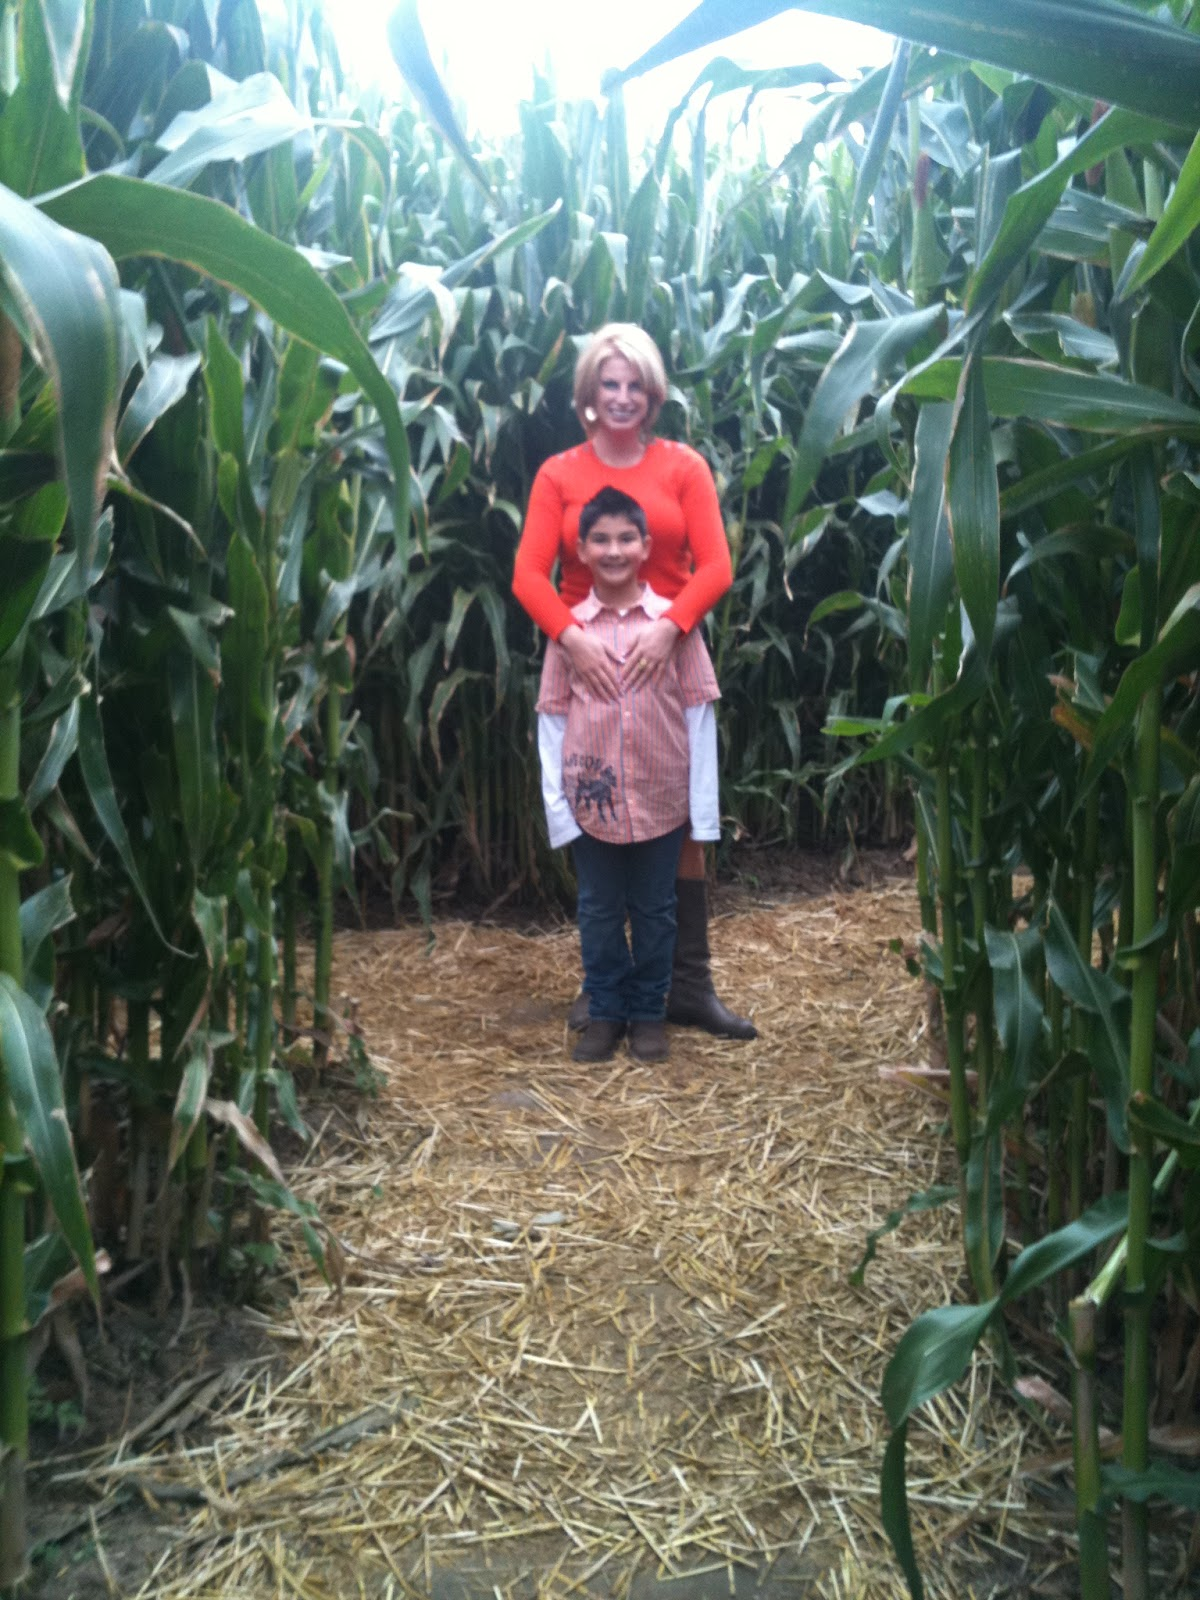 corn mazes and being thankful